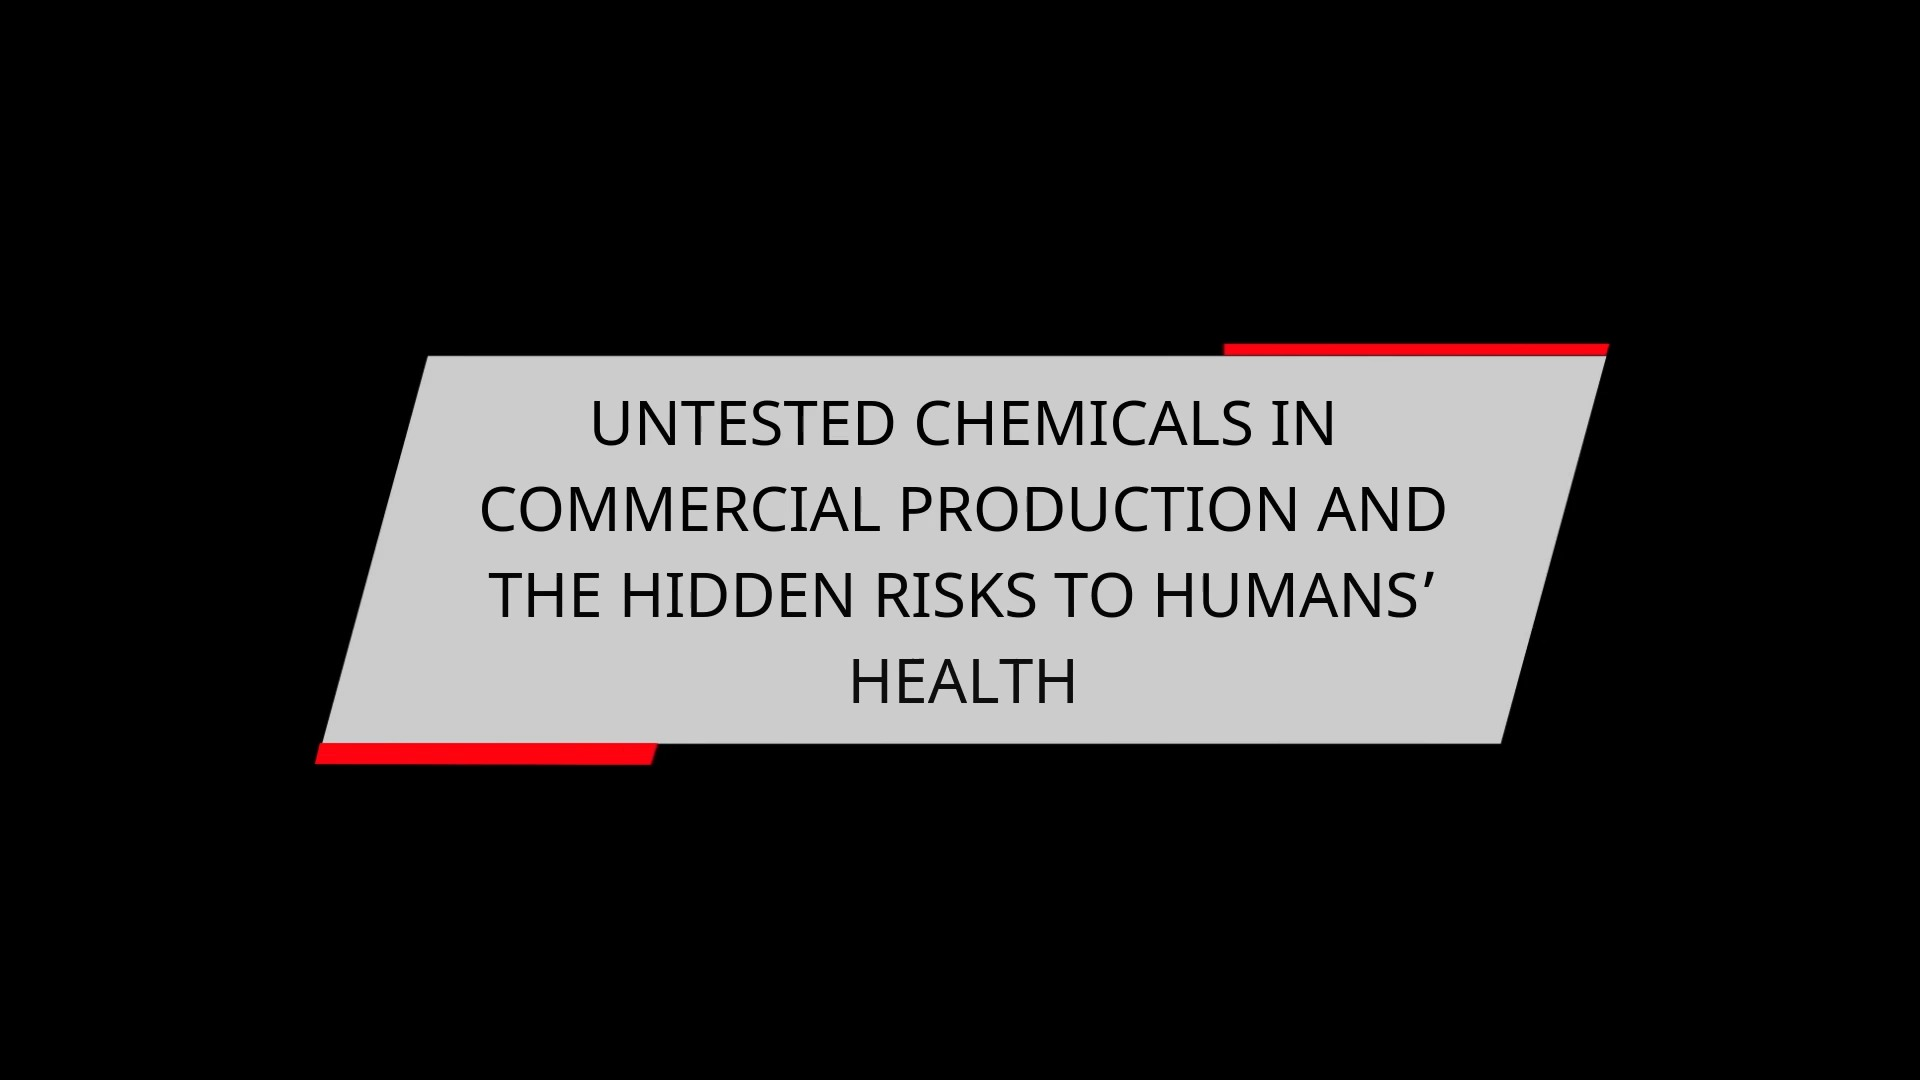 UNTESTED CHEMICALS IN COMMERCIAL PRODUCTION AND THE HIDDEN RISKS TO HUMANS